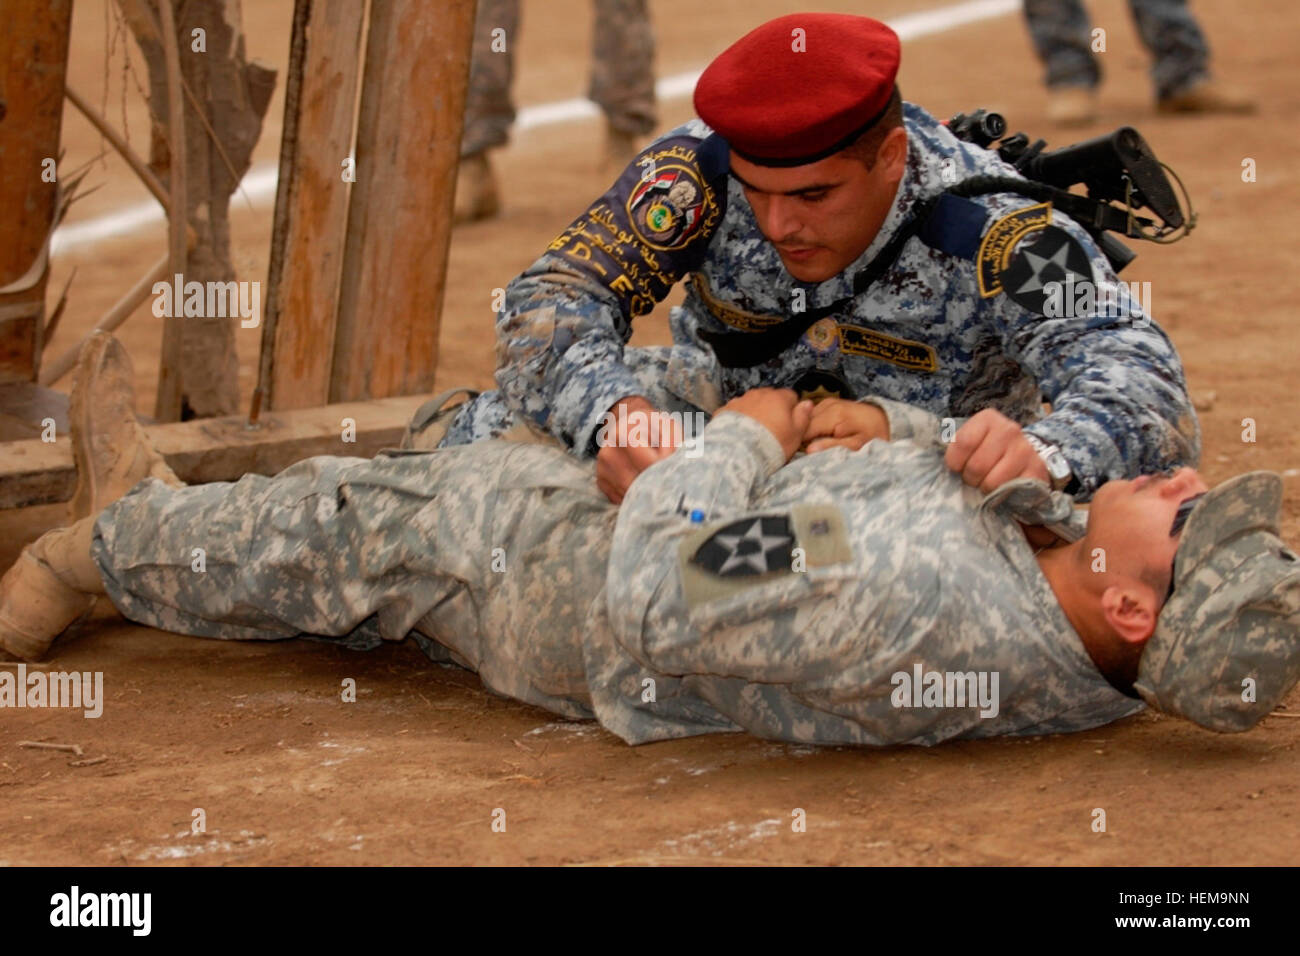 A policeman with the Iraqi Federal Police Explosive Ordnance Disposal Directorates, rolls over a 4th Stryker Brigade - Stock Image